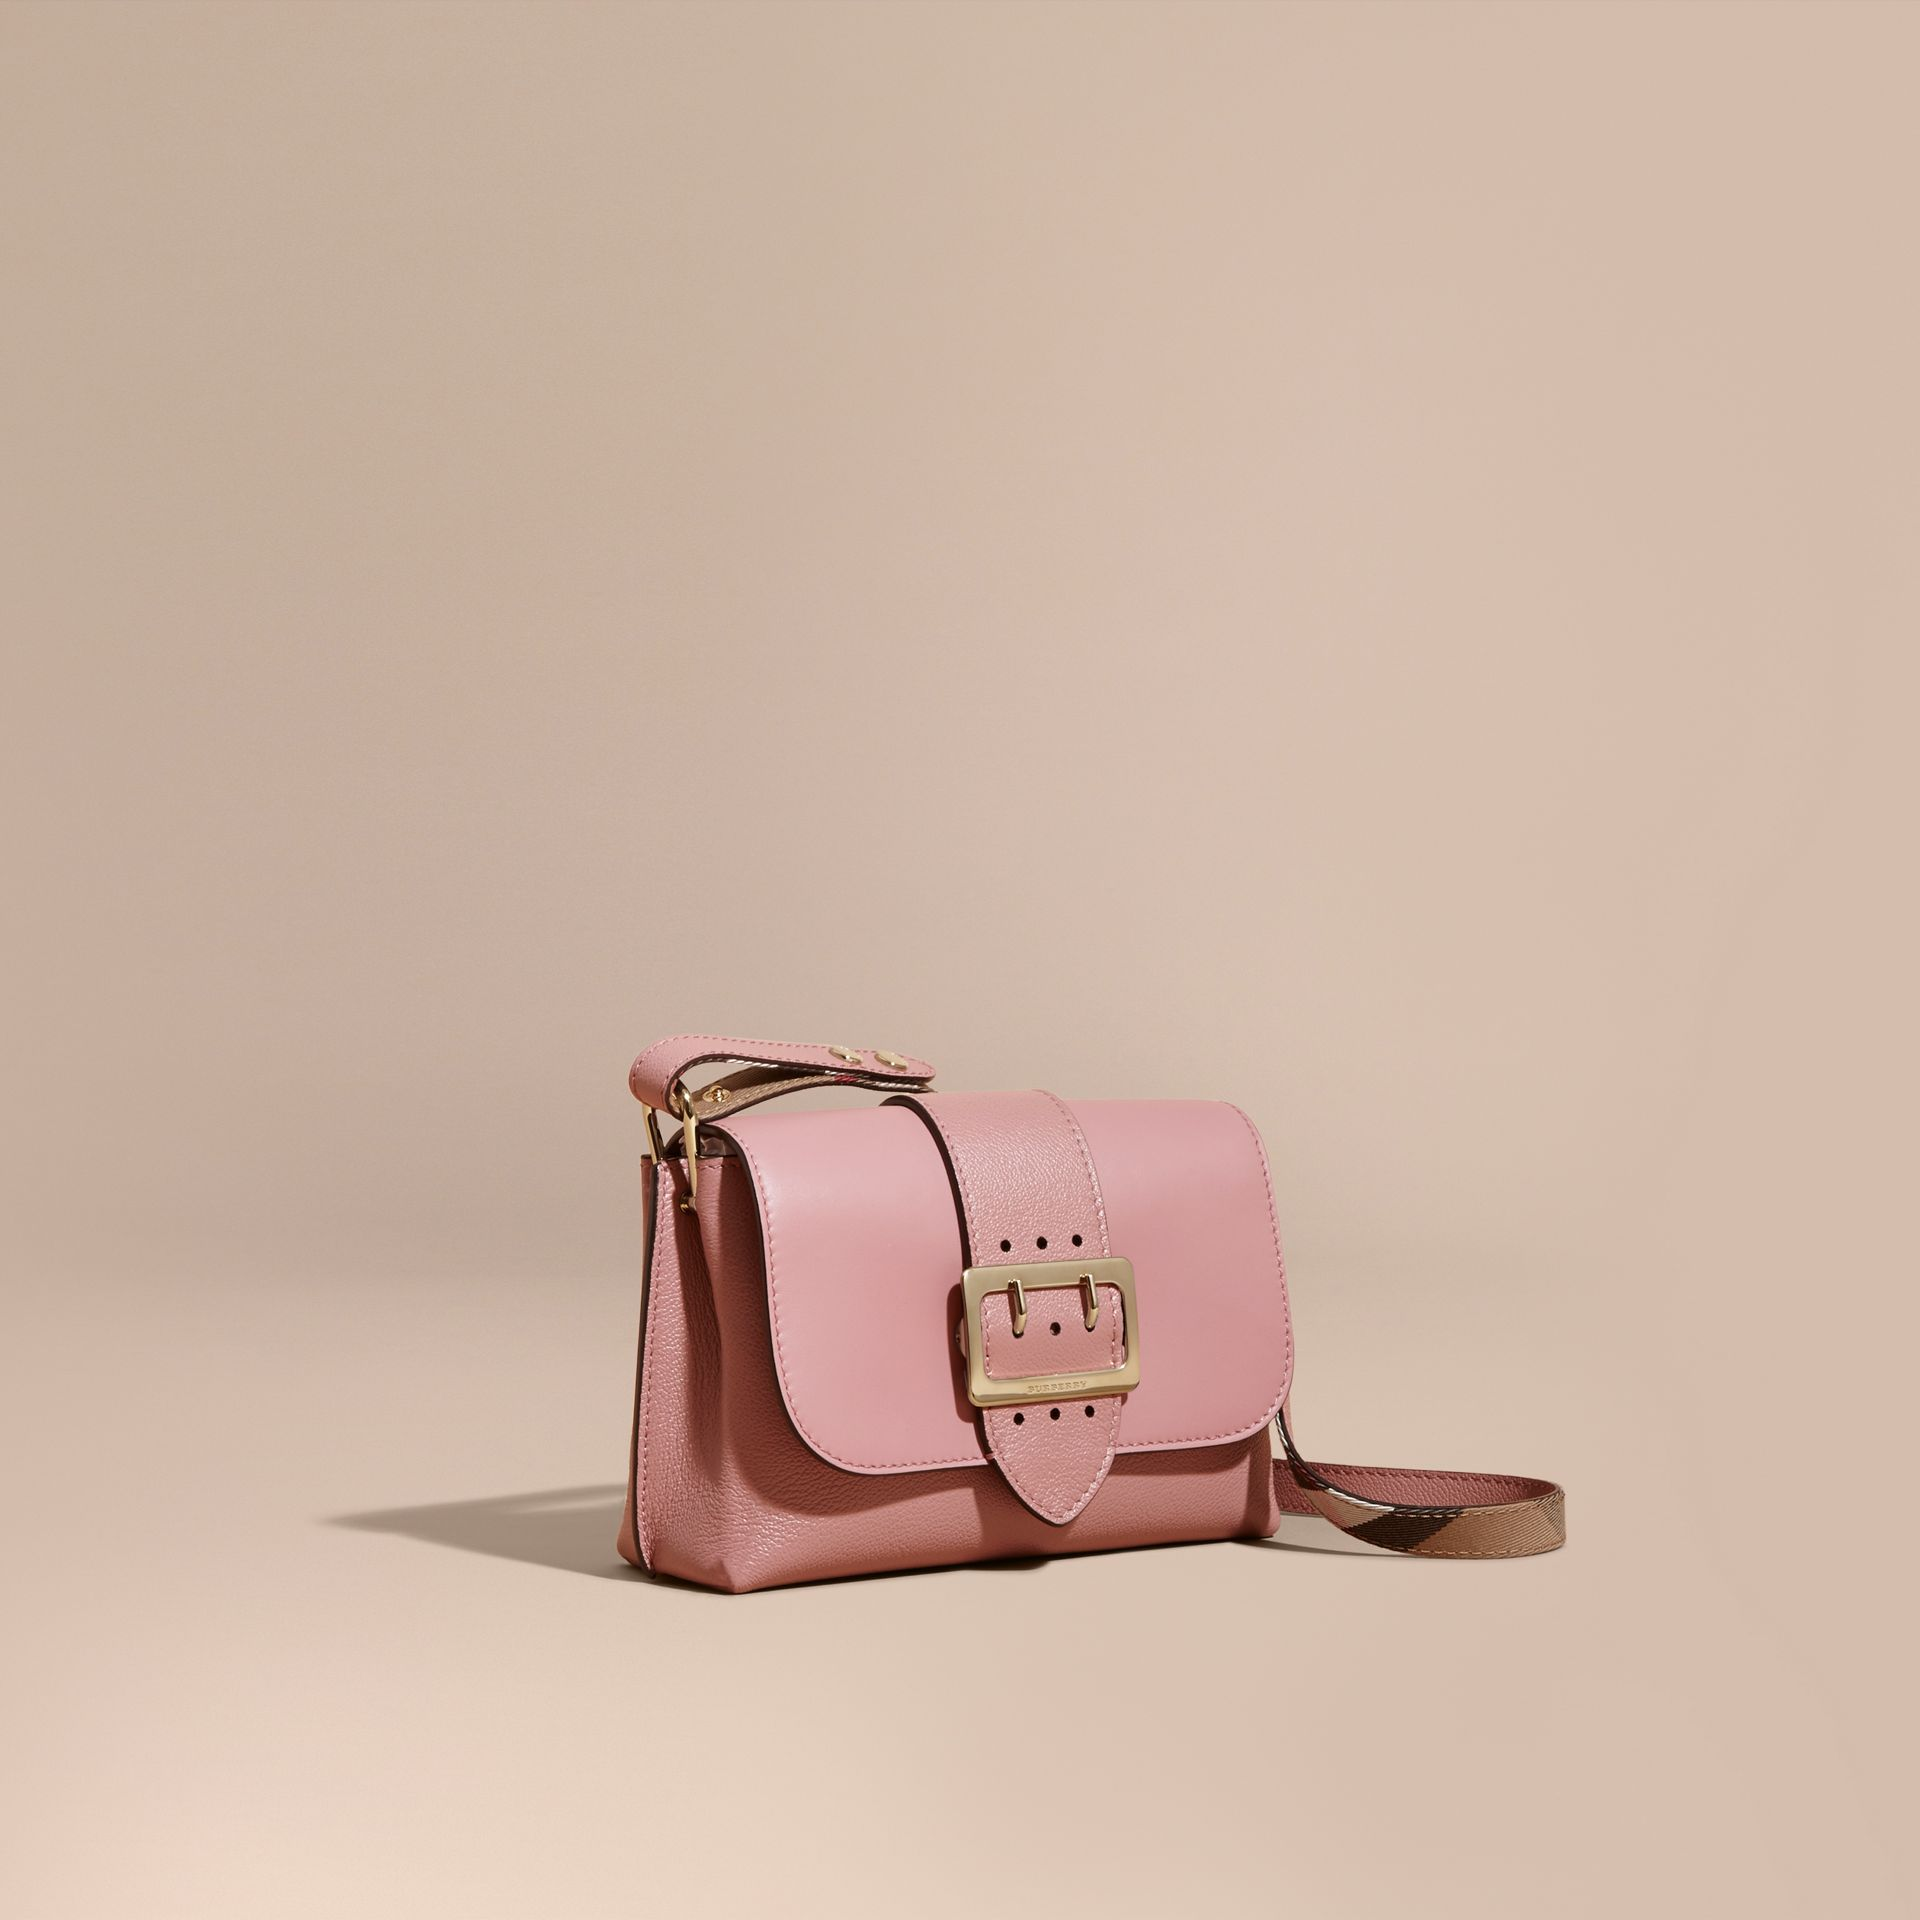 The Buckle Crossbody Bag in Leather in Dusty Pink - gallery image 1